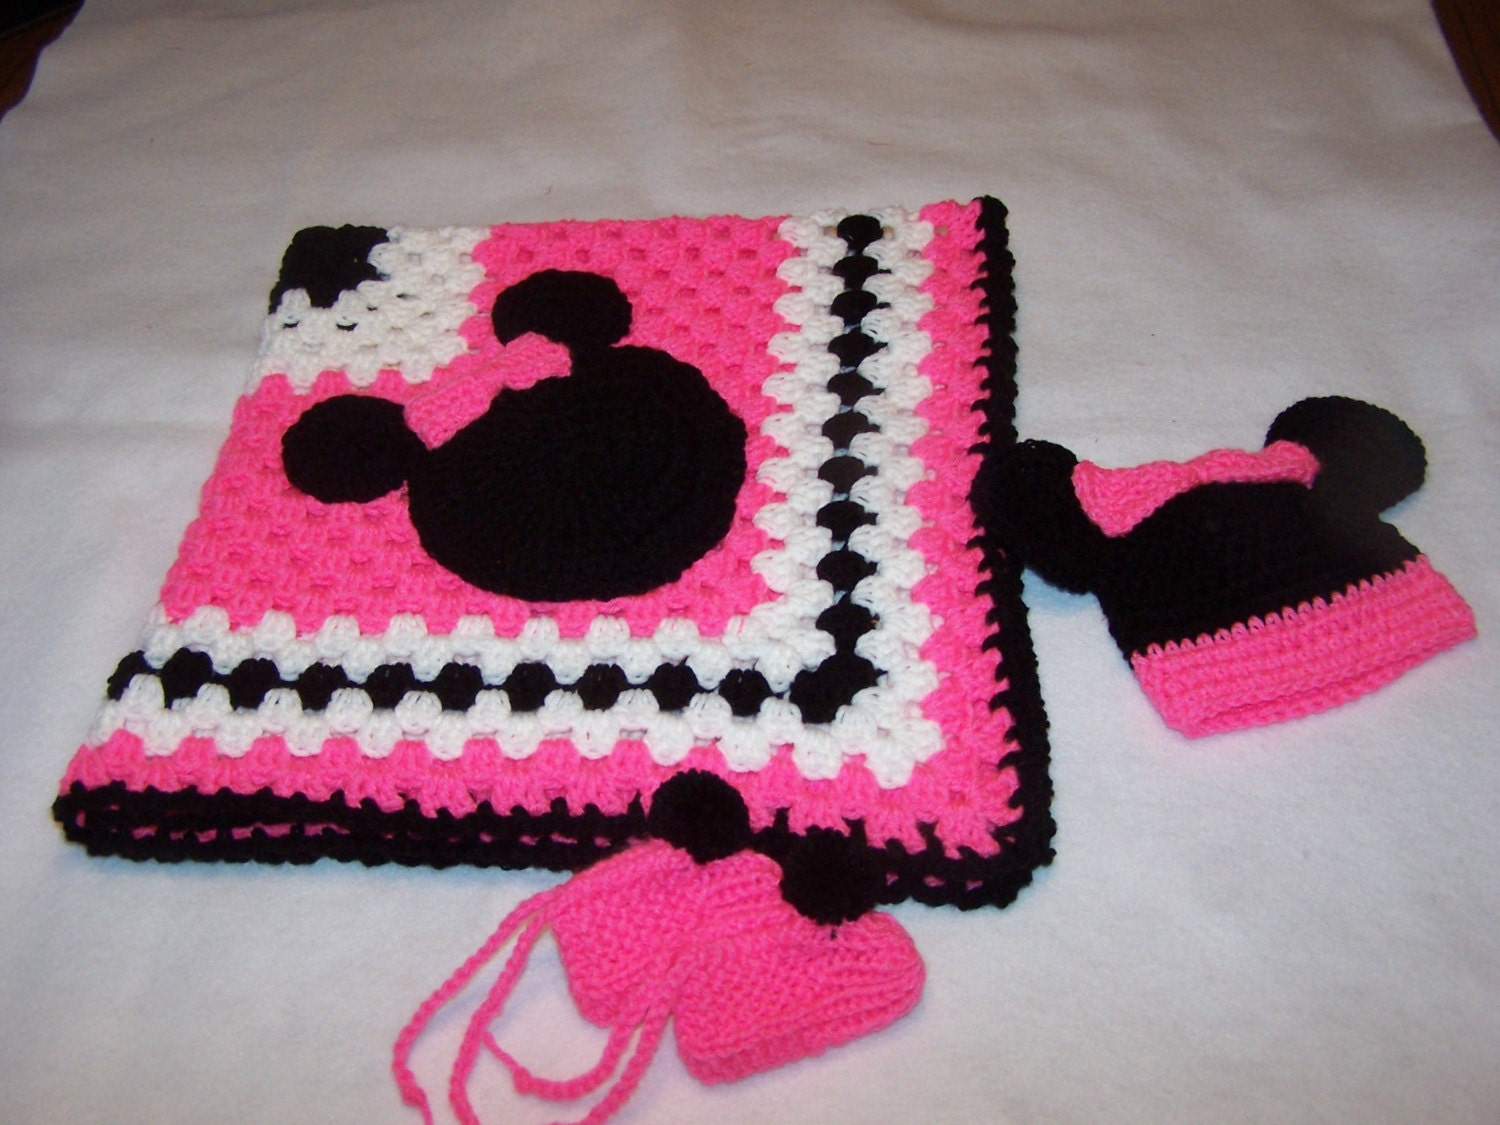 Hand Crocheted Minnie Mouse Granny Square Baby Blanket